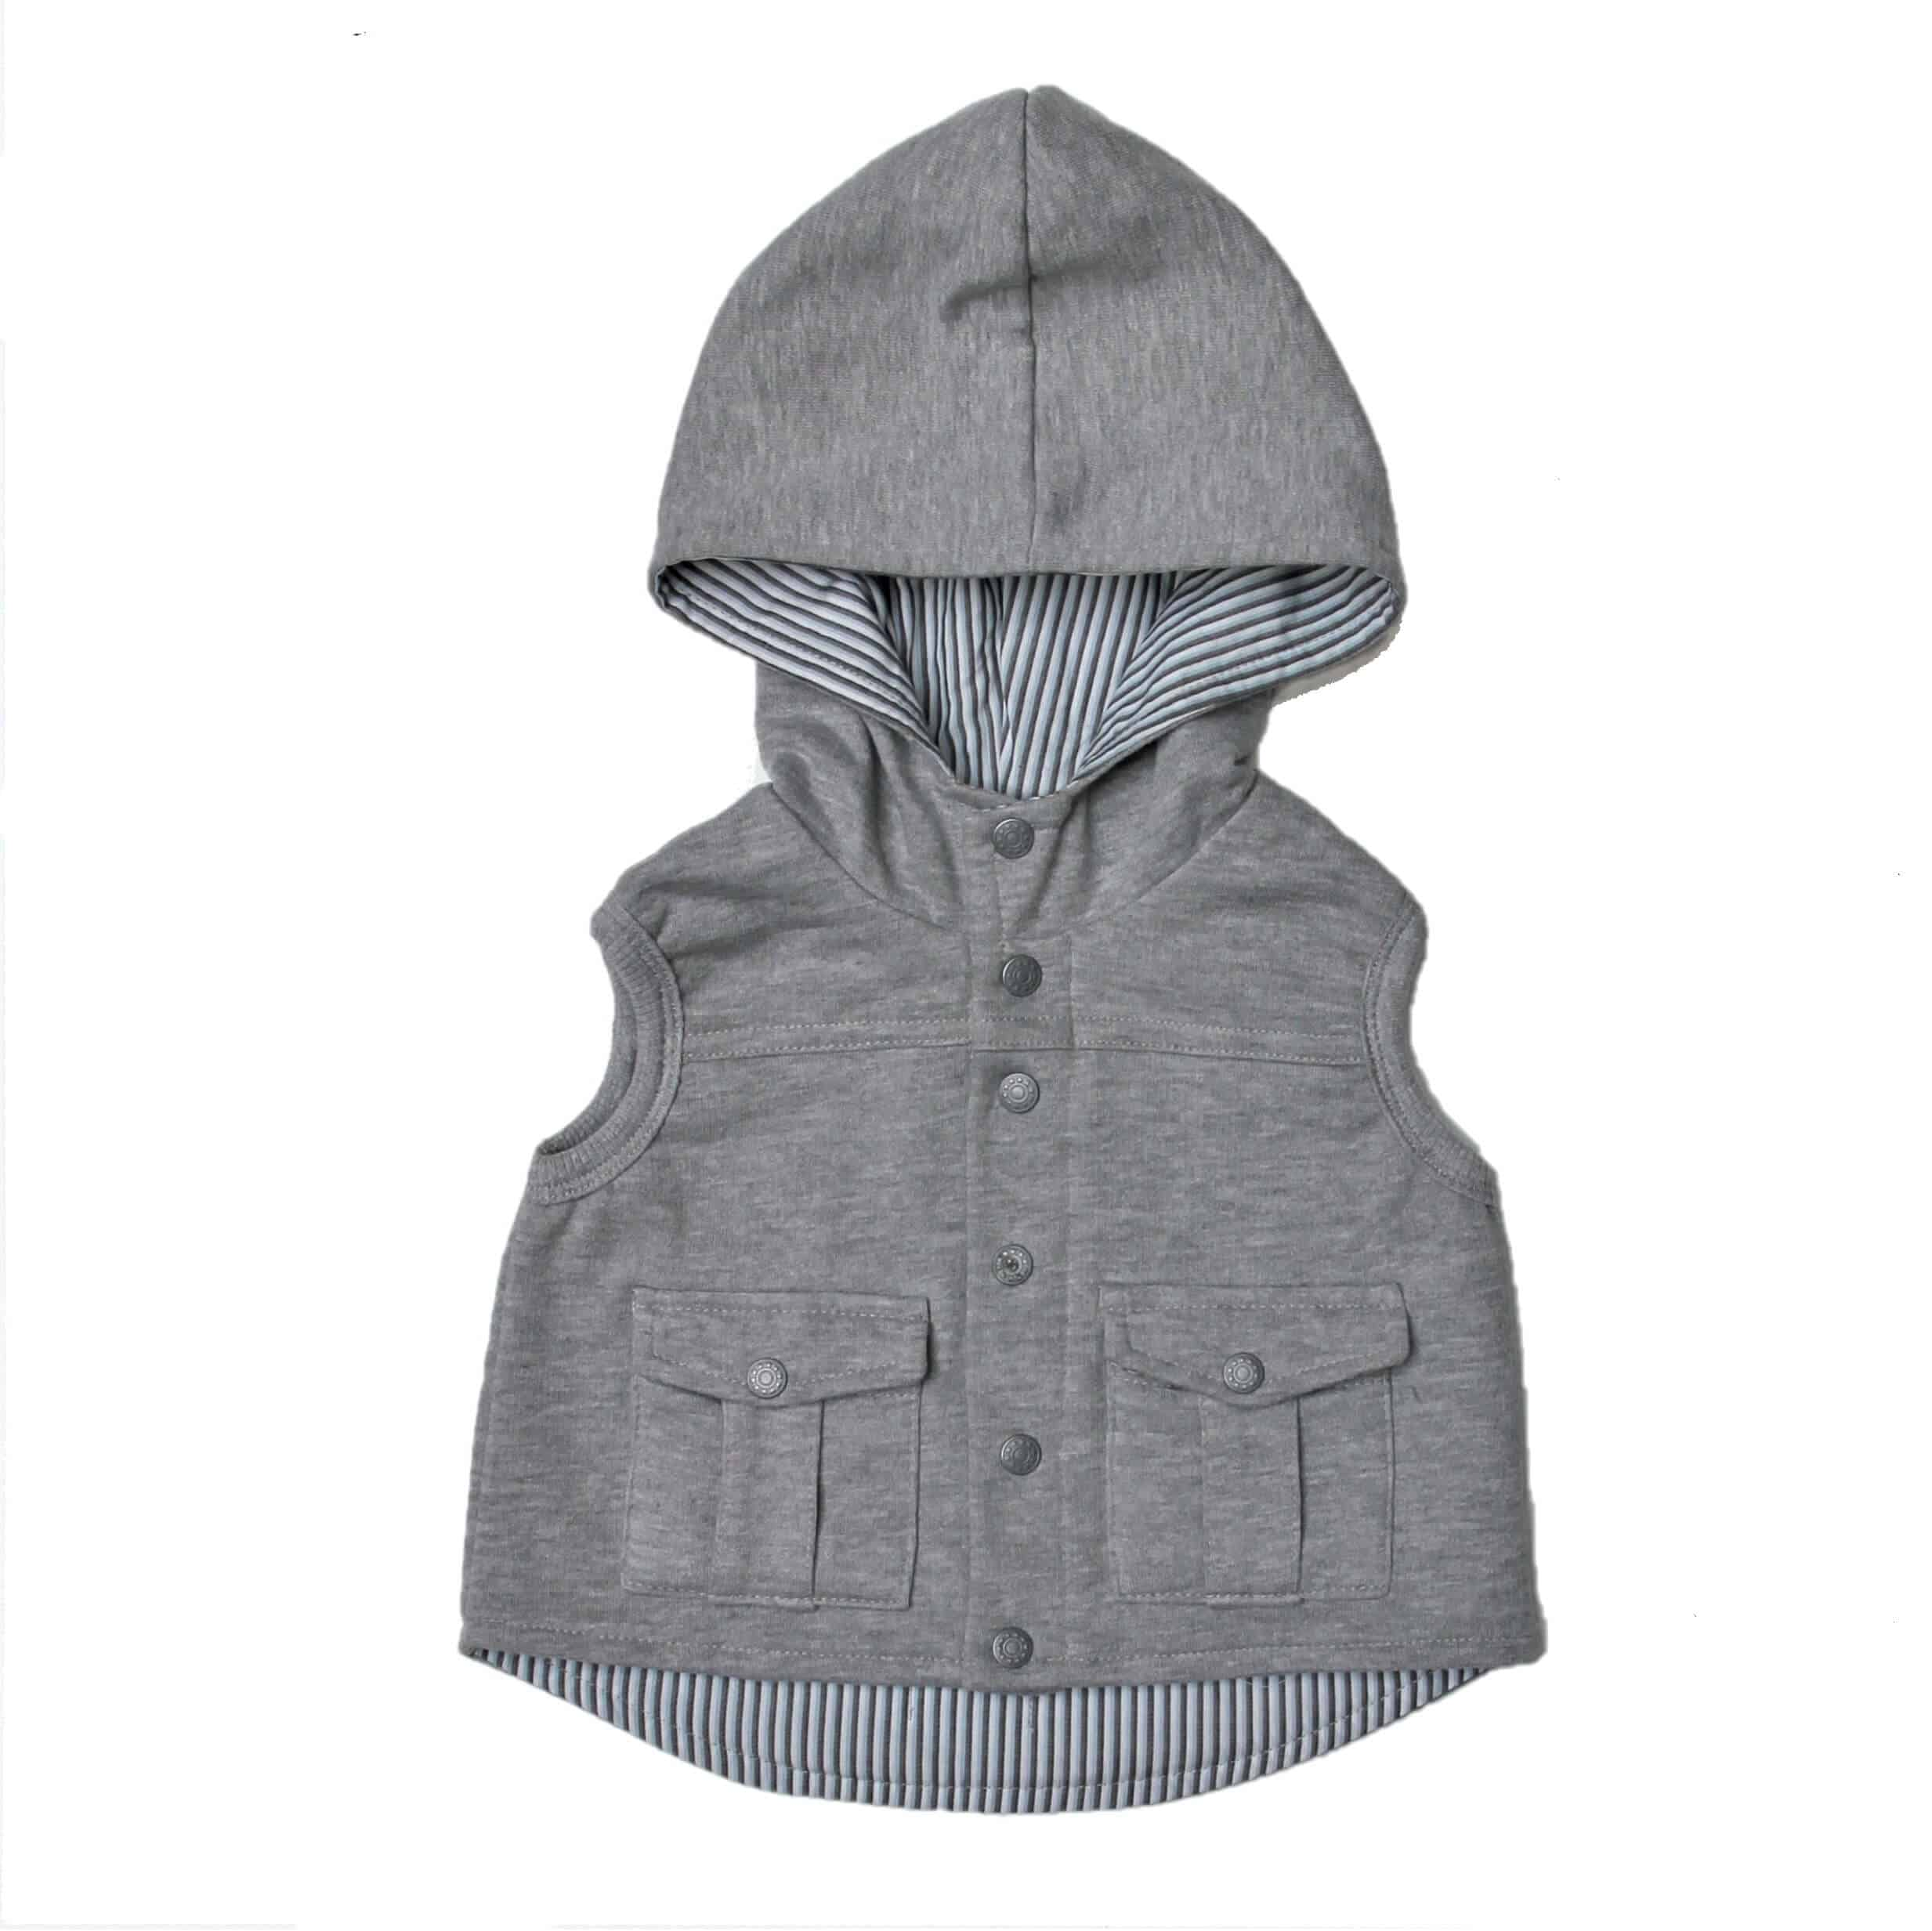 106ffaa8 Grey Sleeveless Hoodie - Just Chillin Baby Clothes Online South Africa